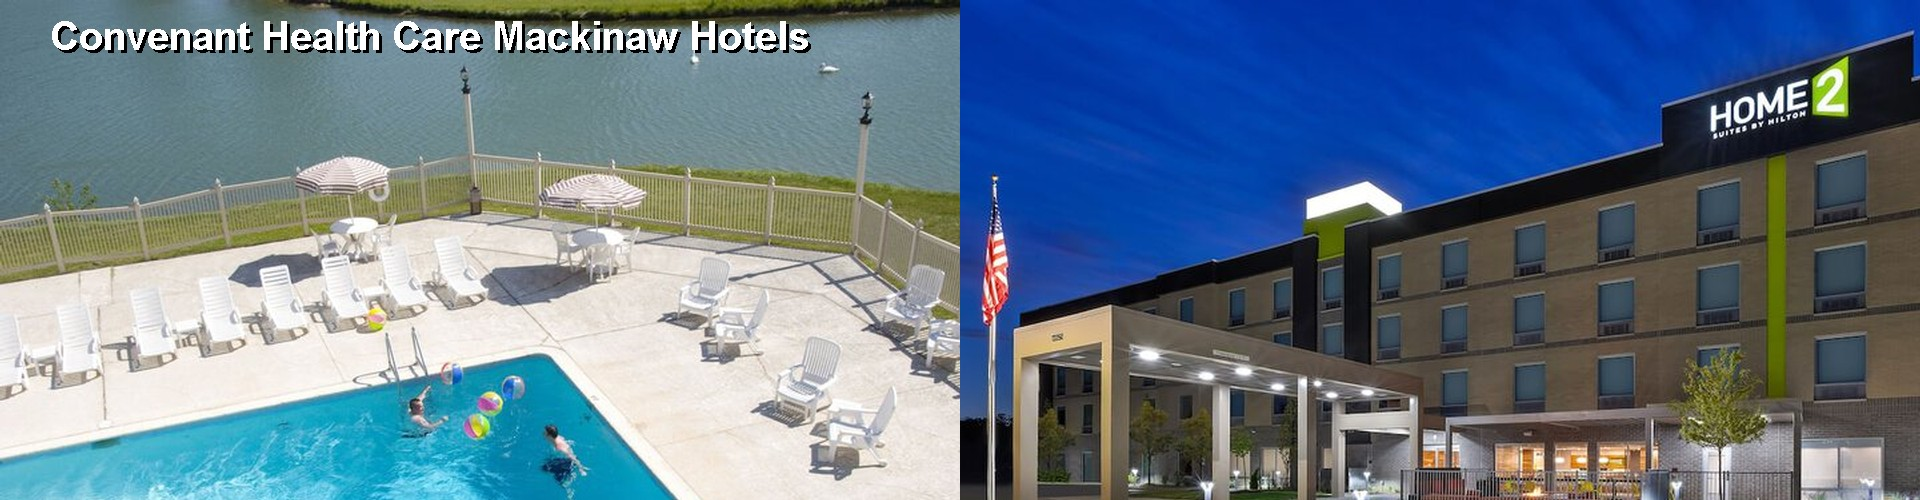 5 Best Hotels near Convenant Health Care Mackinaw